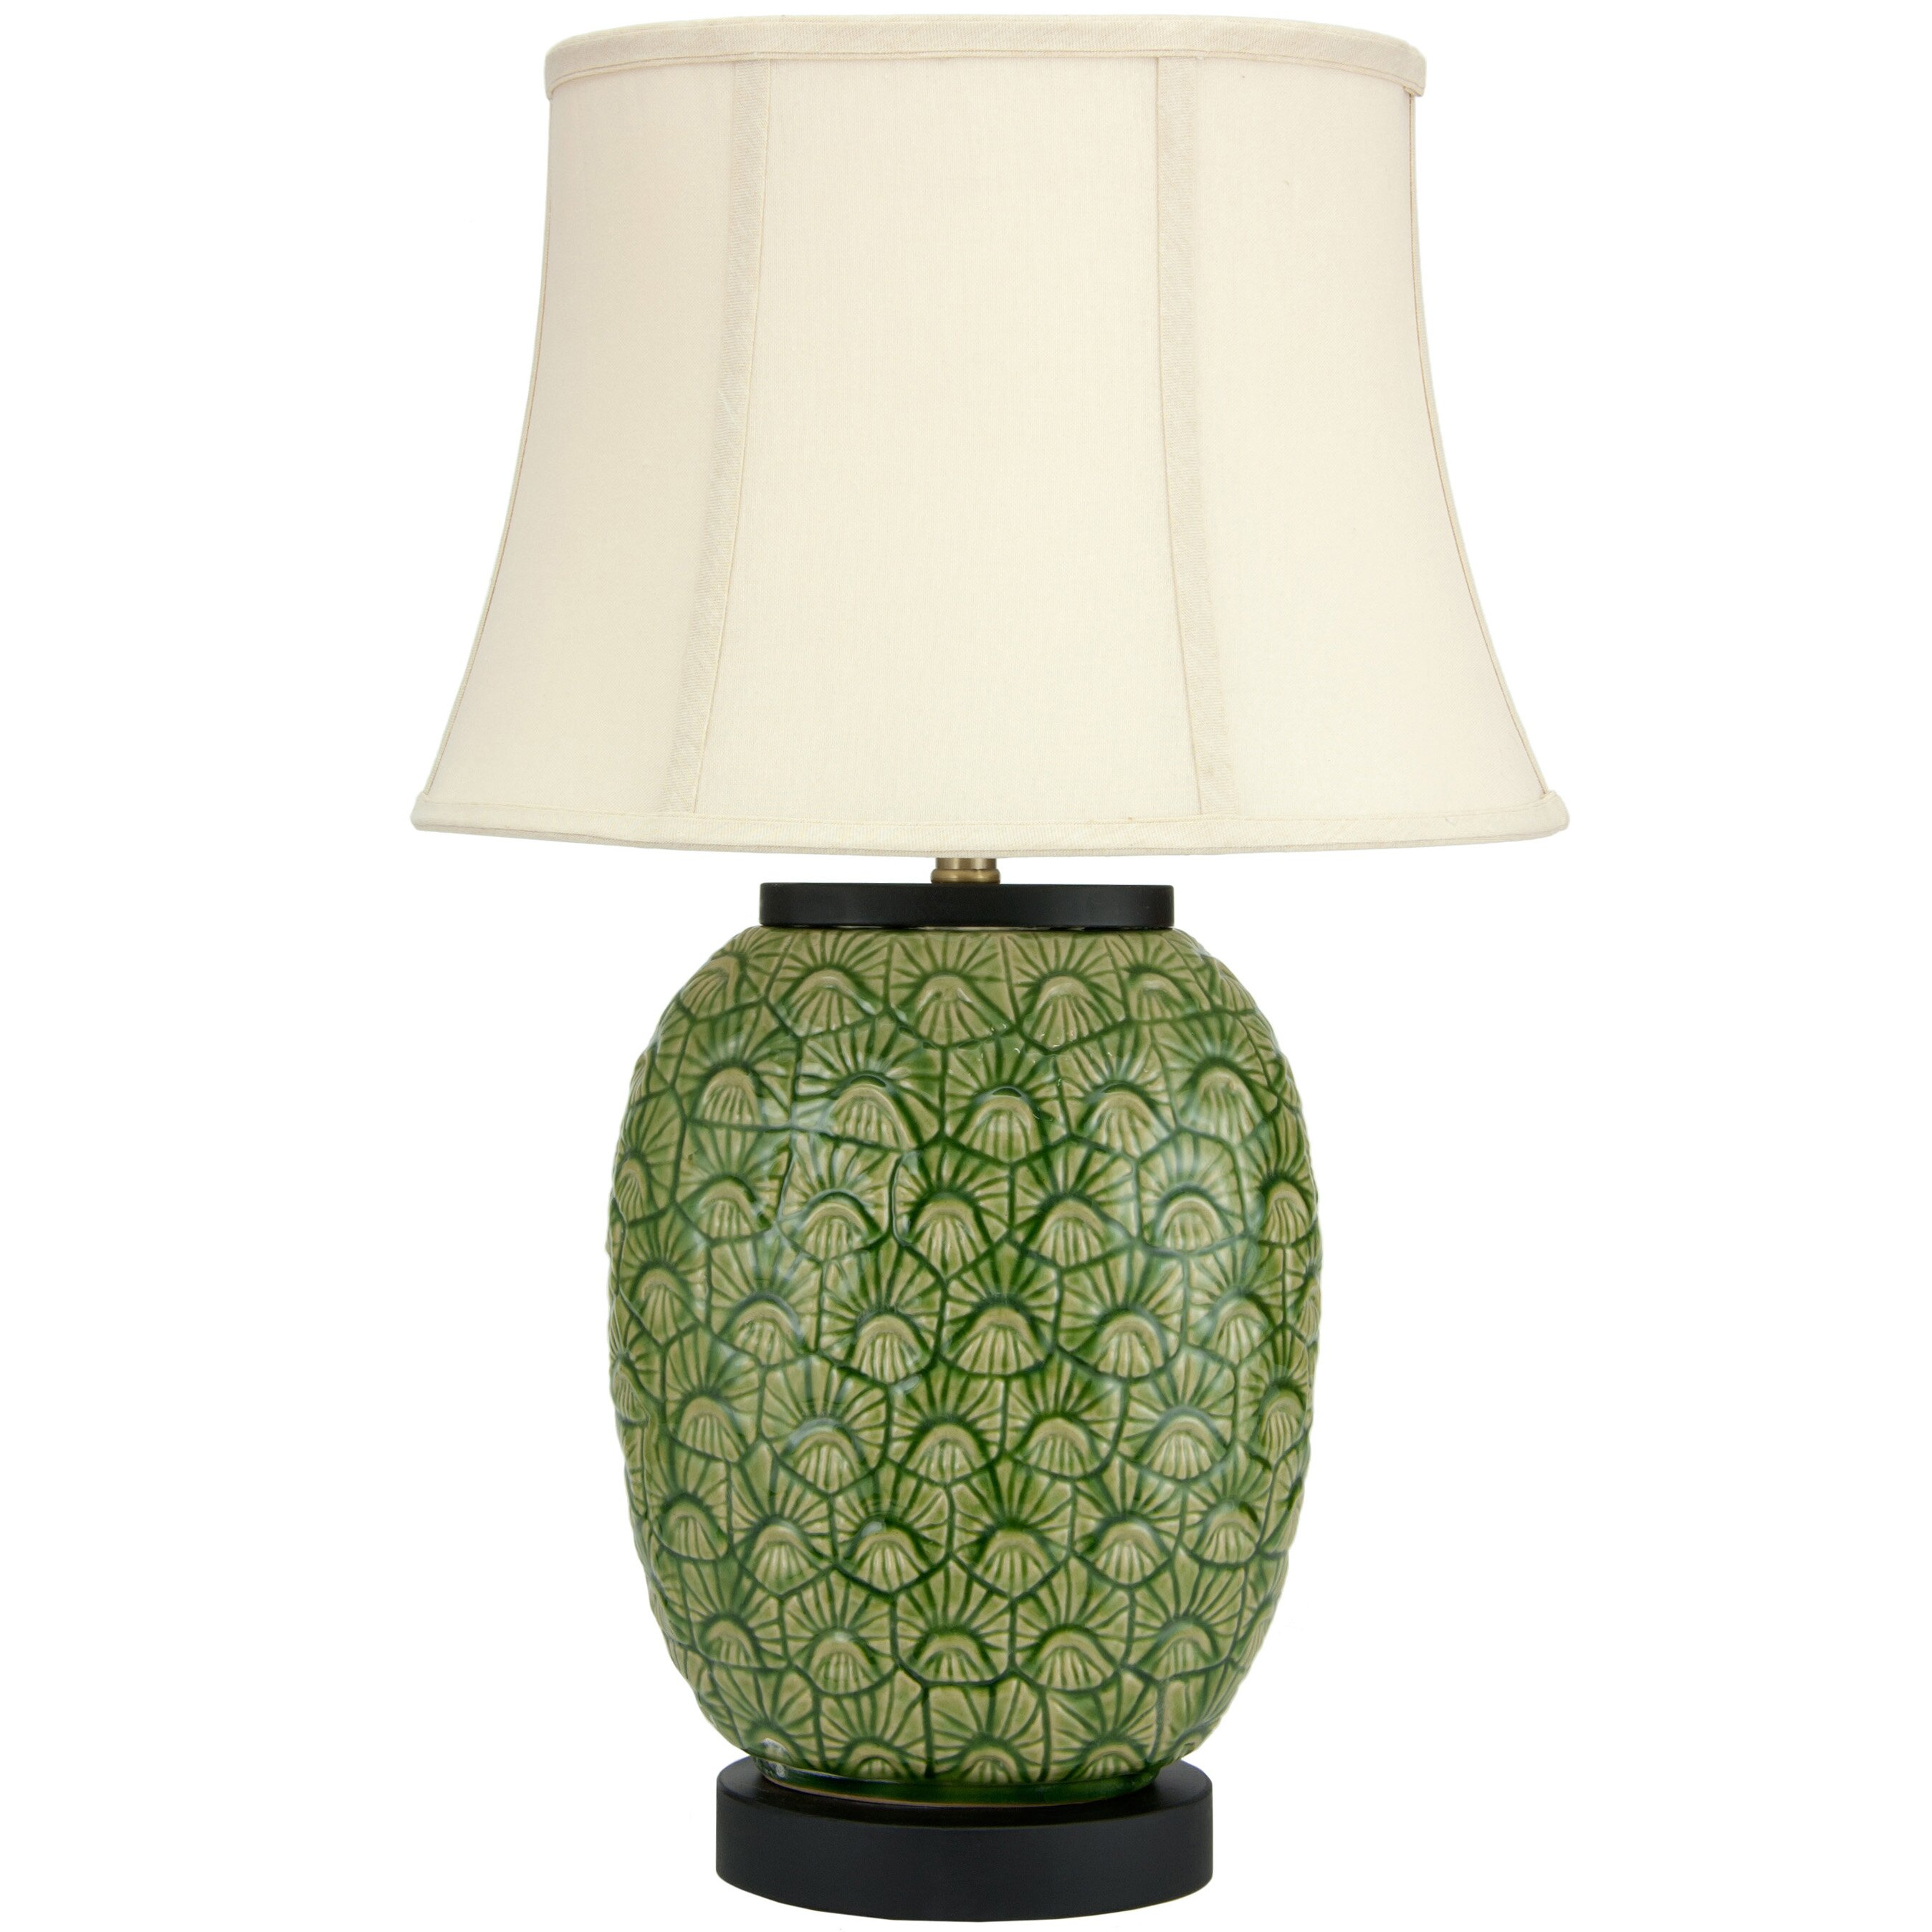 Table lamps chinese design best inspiration for table lamp red oriental table lamp vintage japanese asian design porcelain light geotapseo Gallery